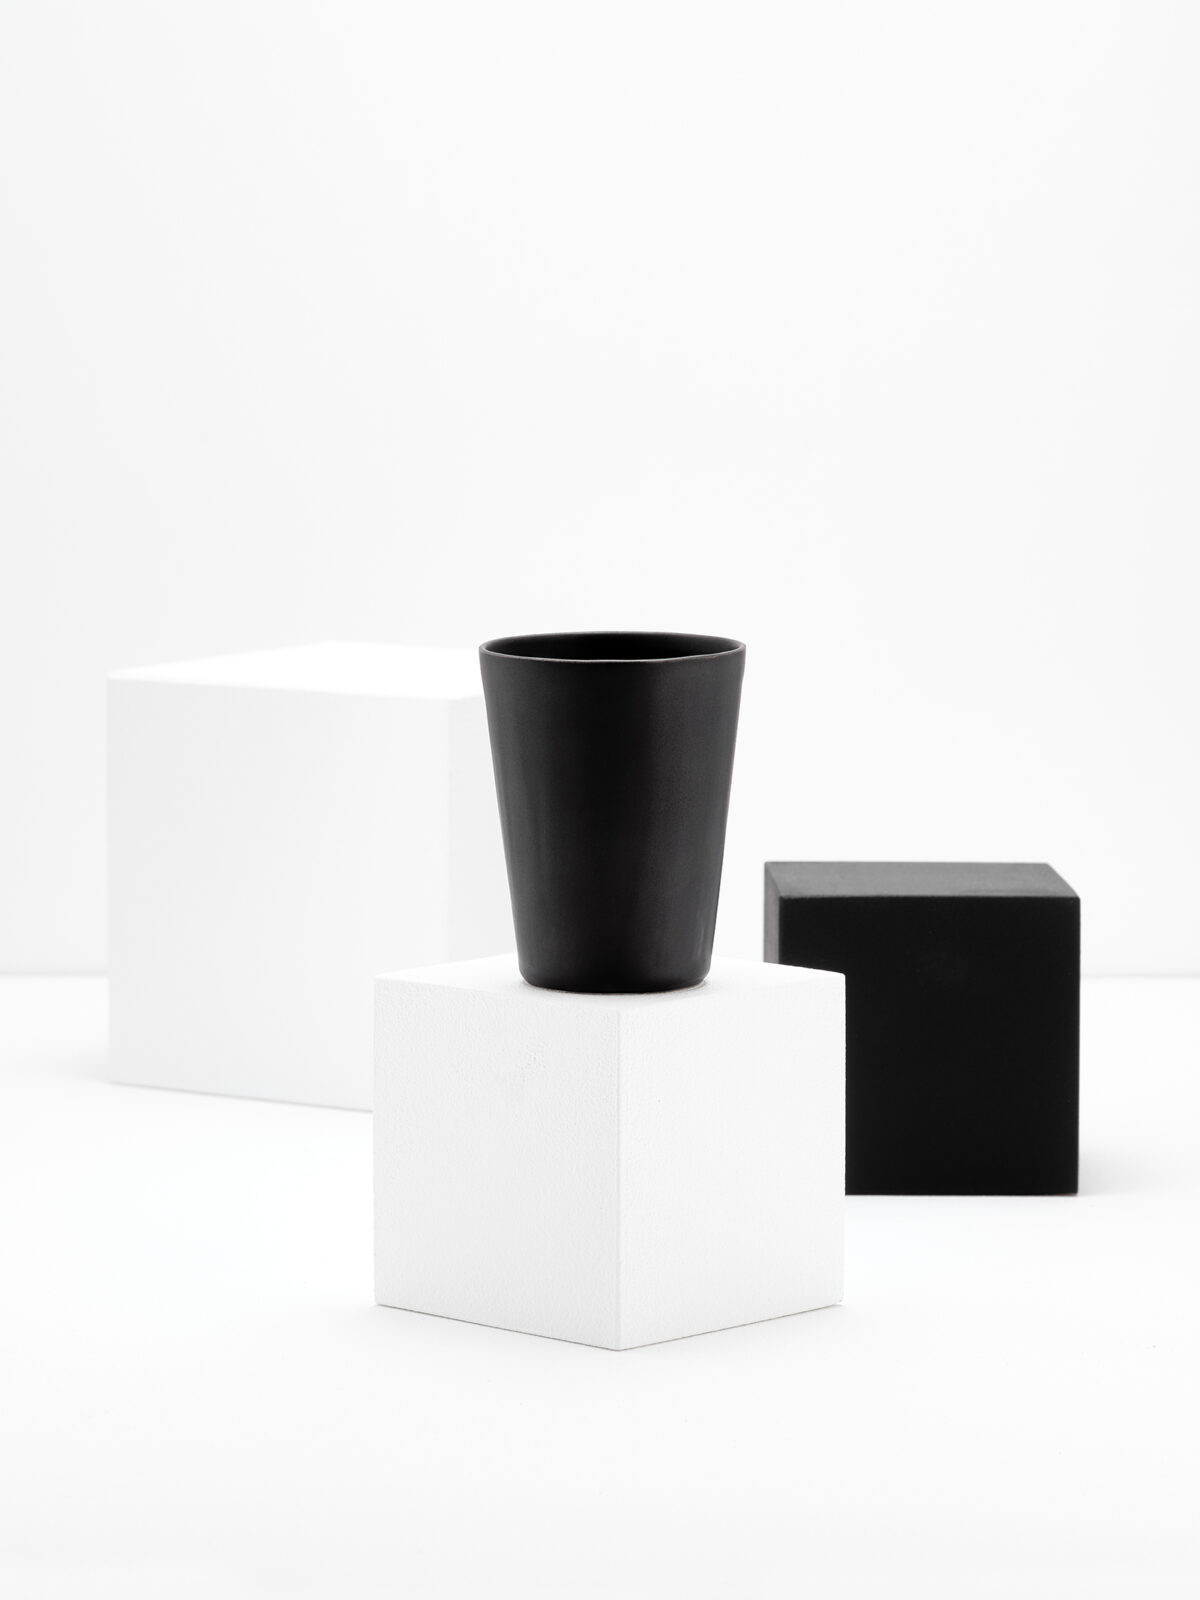 Shades of eternity cup